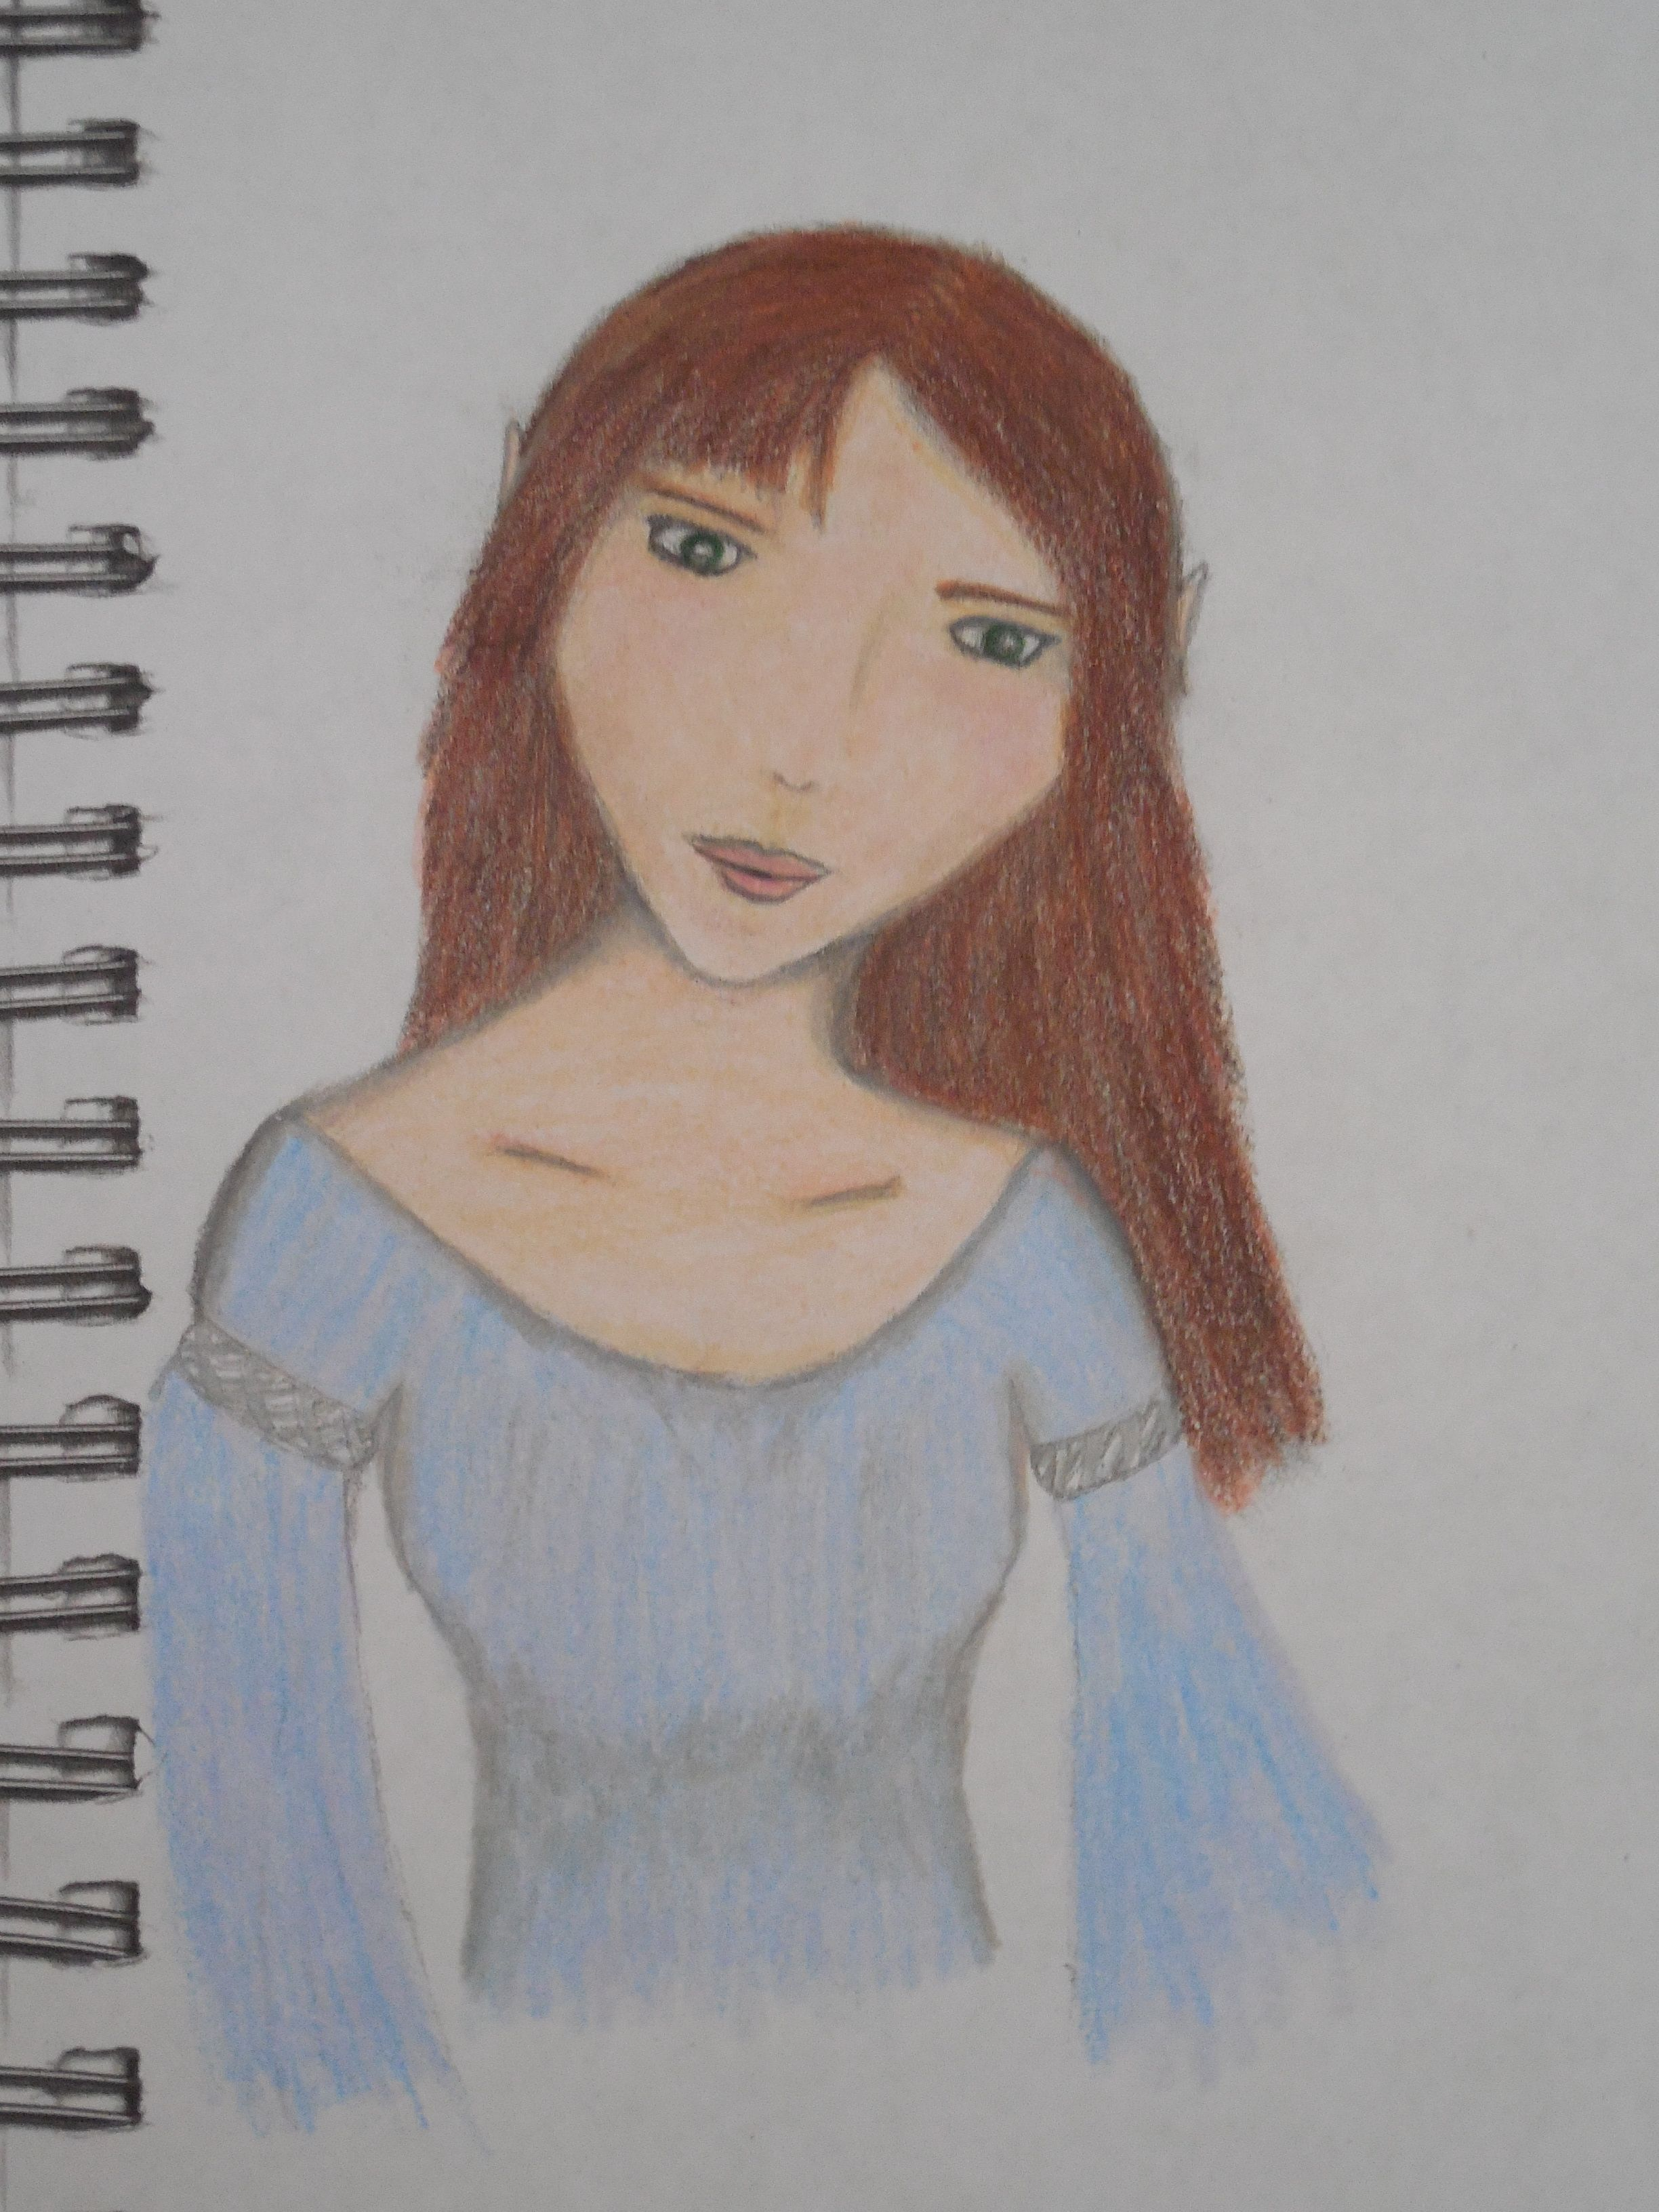 Hi, all! I'm new to this board, so here's a quick summary of me. I love to draw - fantasy, mostly - and I try to be as realistic as possible, but sometimes I draw manga. This is one of my best works.